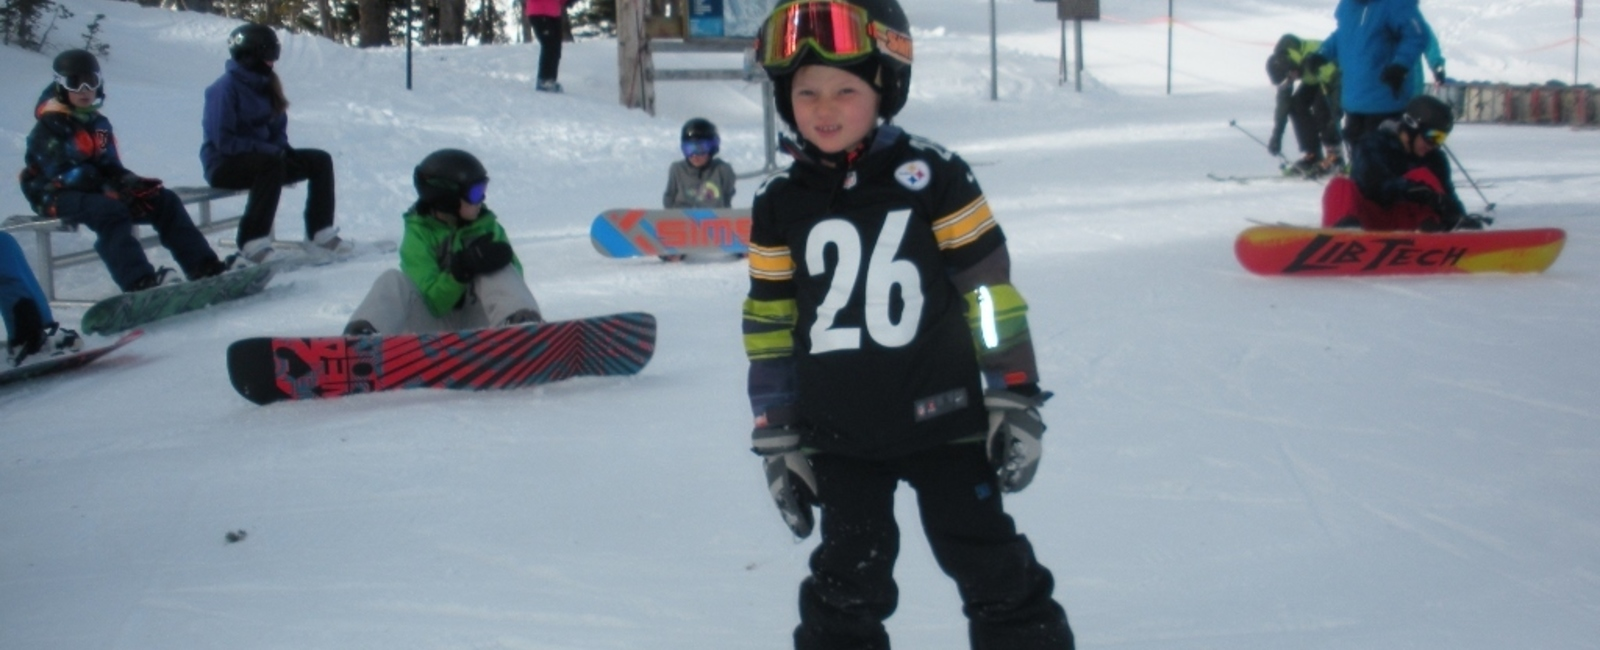 """It just takes practice."" Advice from a 7 year old snowboarder!"